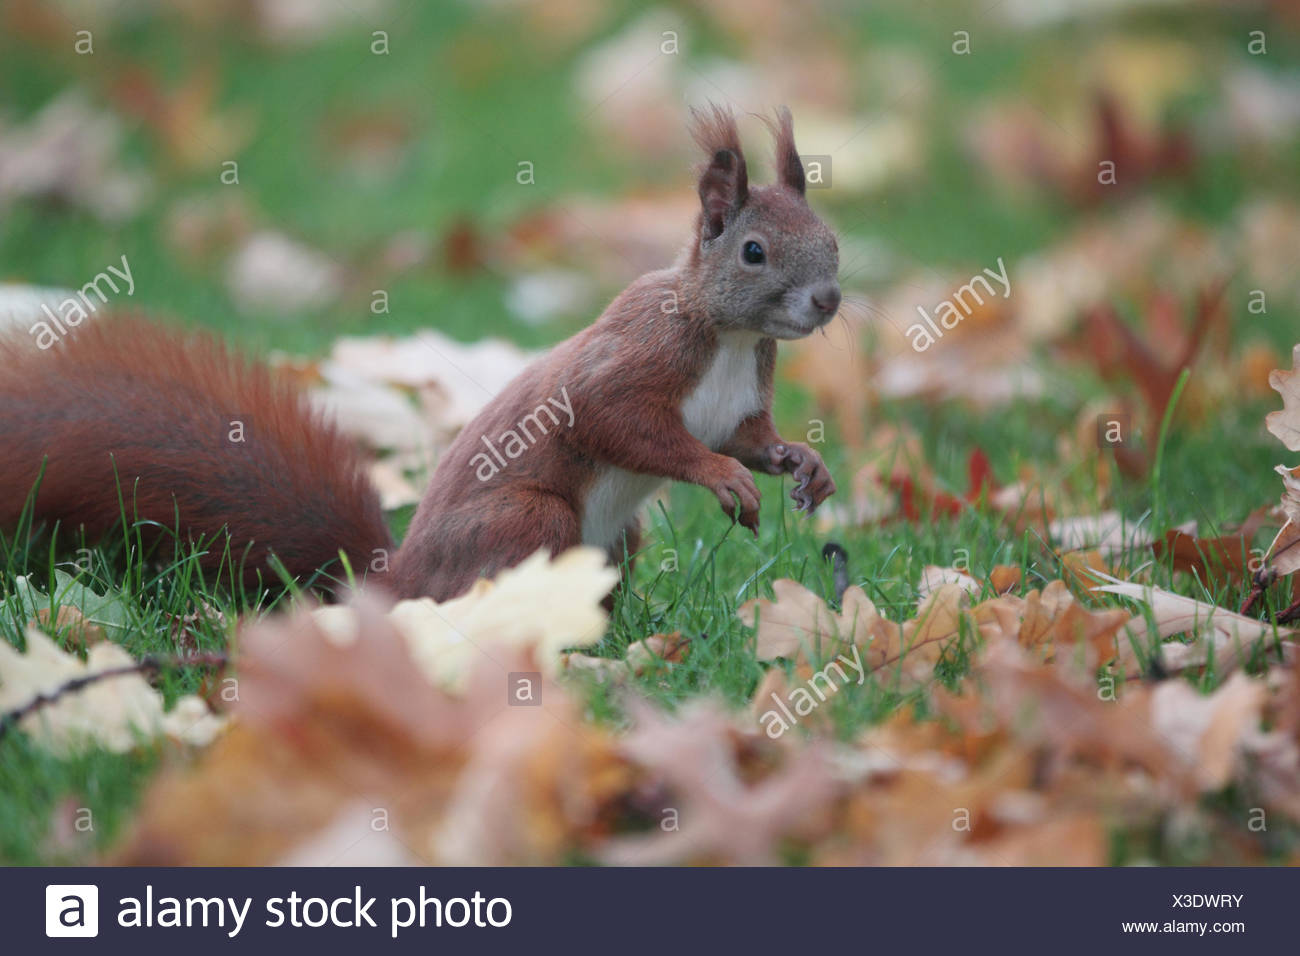 Portrait of an Eurasian red squirrel, Sciurus vulgaris, a species of tree squirrel common throughout Eurasia. - Stock Image